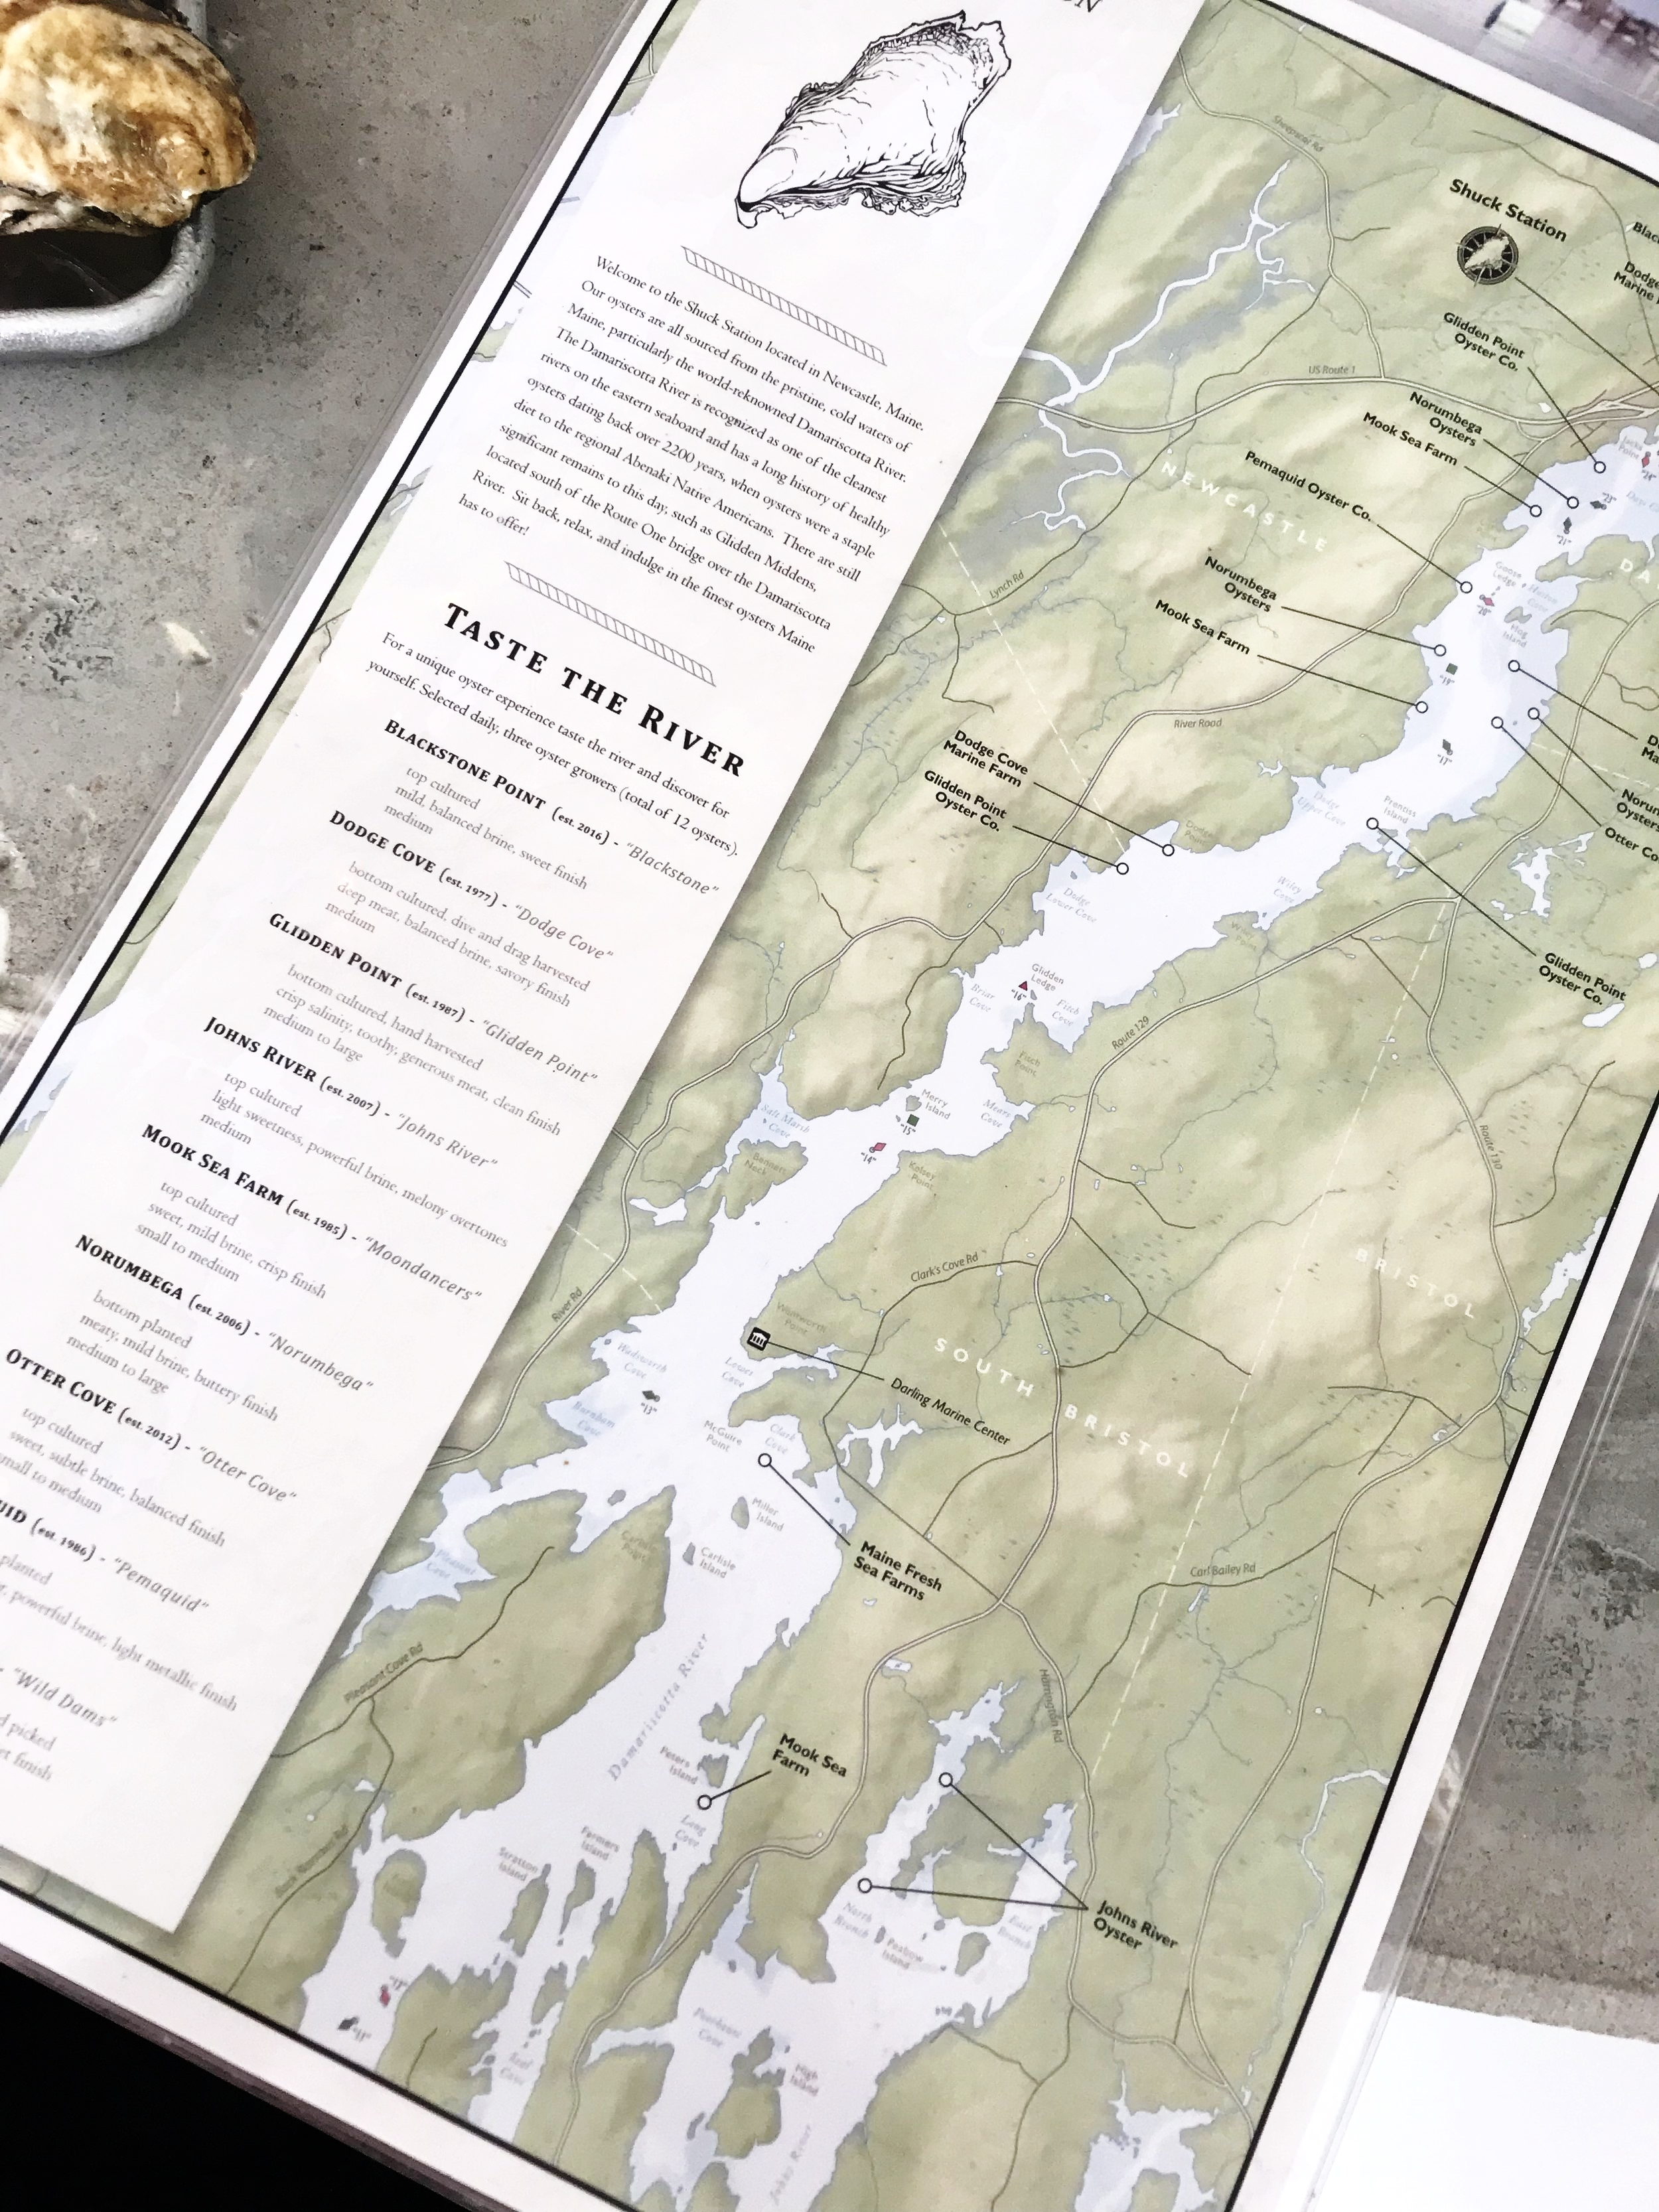 The Oyster Menu - A Map!